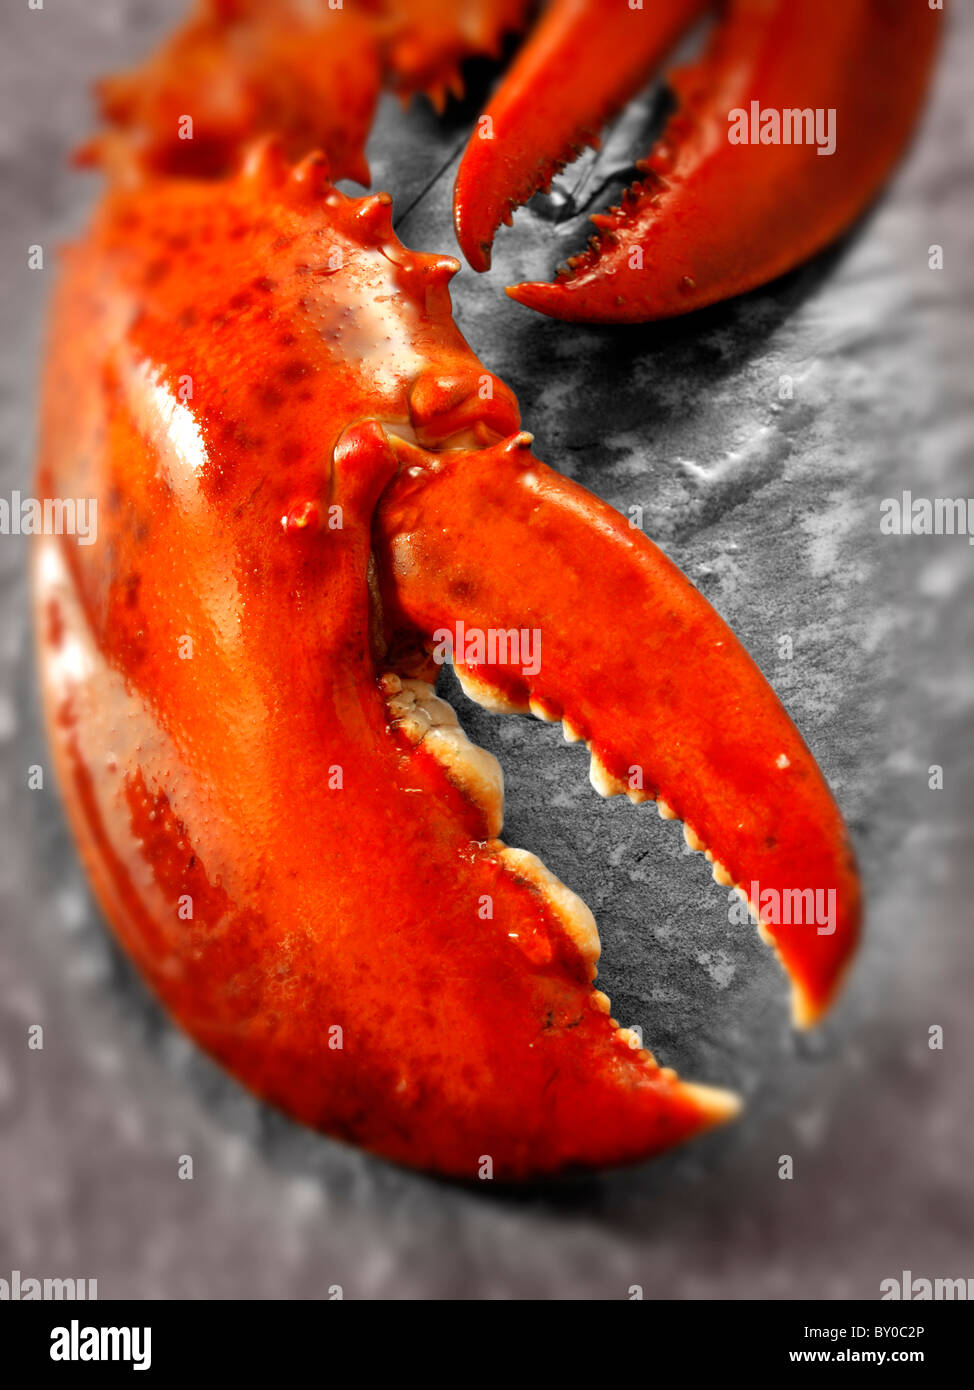 Fresh cooked whole lobster claws - Stock Image